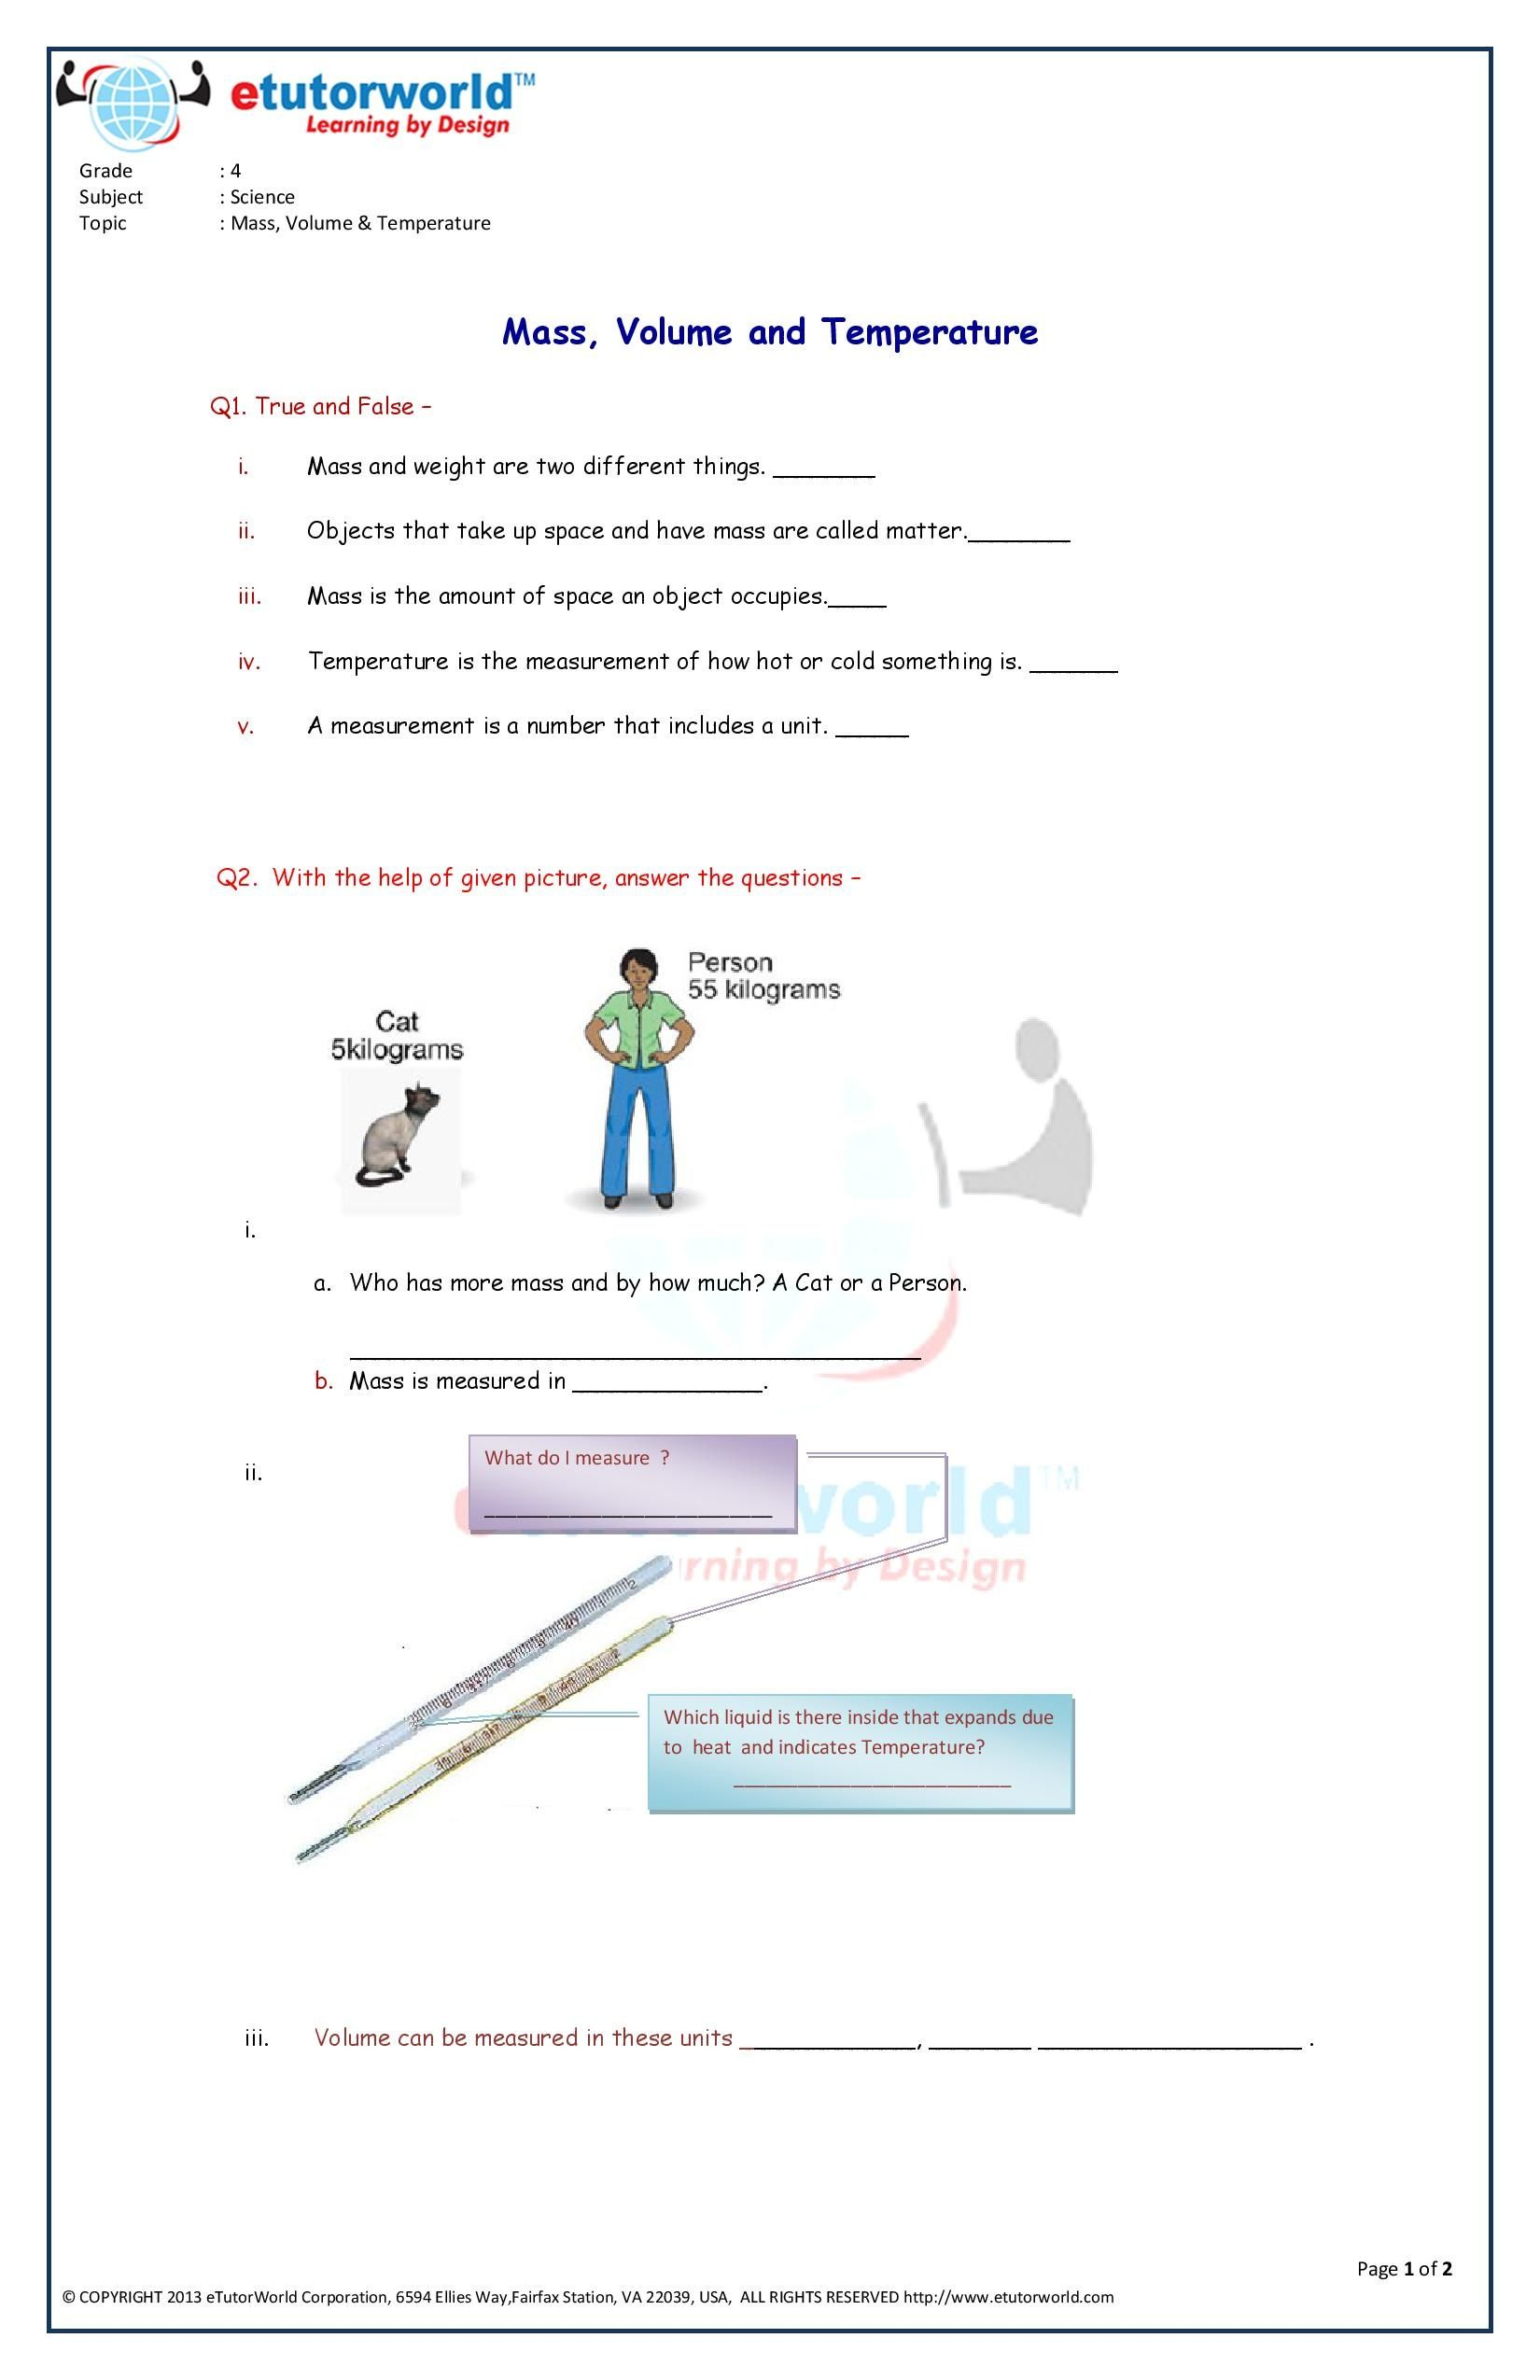 Pin by Candice Adams on Grade 4 Science Worksheets   Science worksheets [ 2550 x 1650 Pixel ]